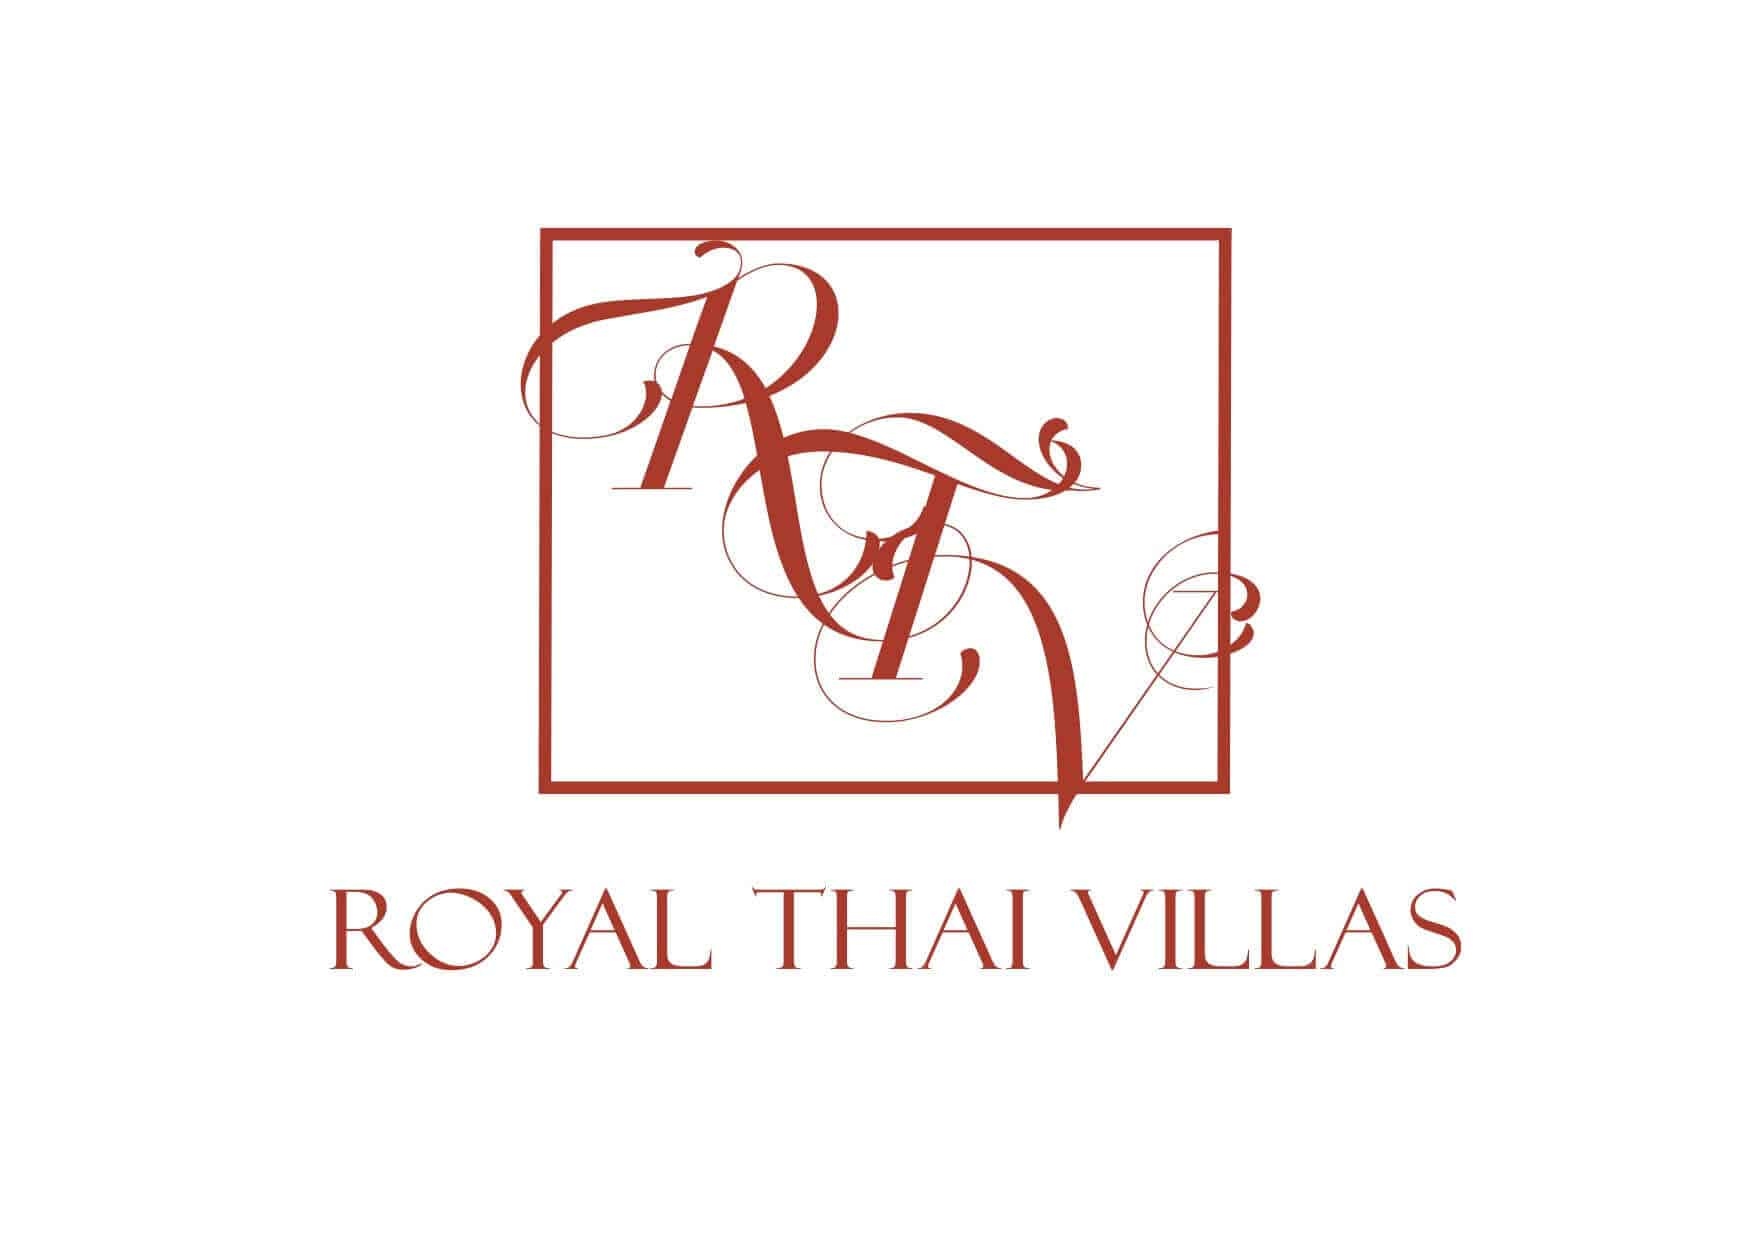 Royal-thai-villas-logo